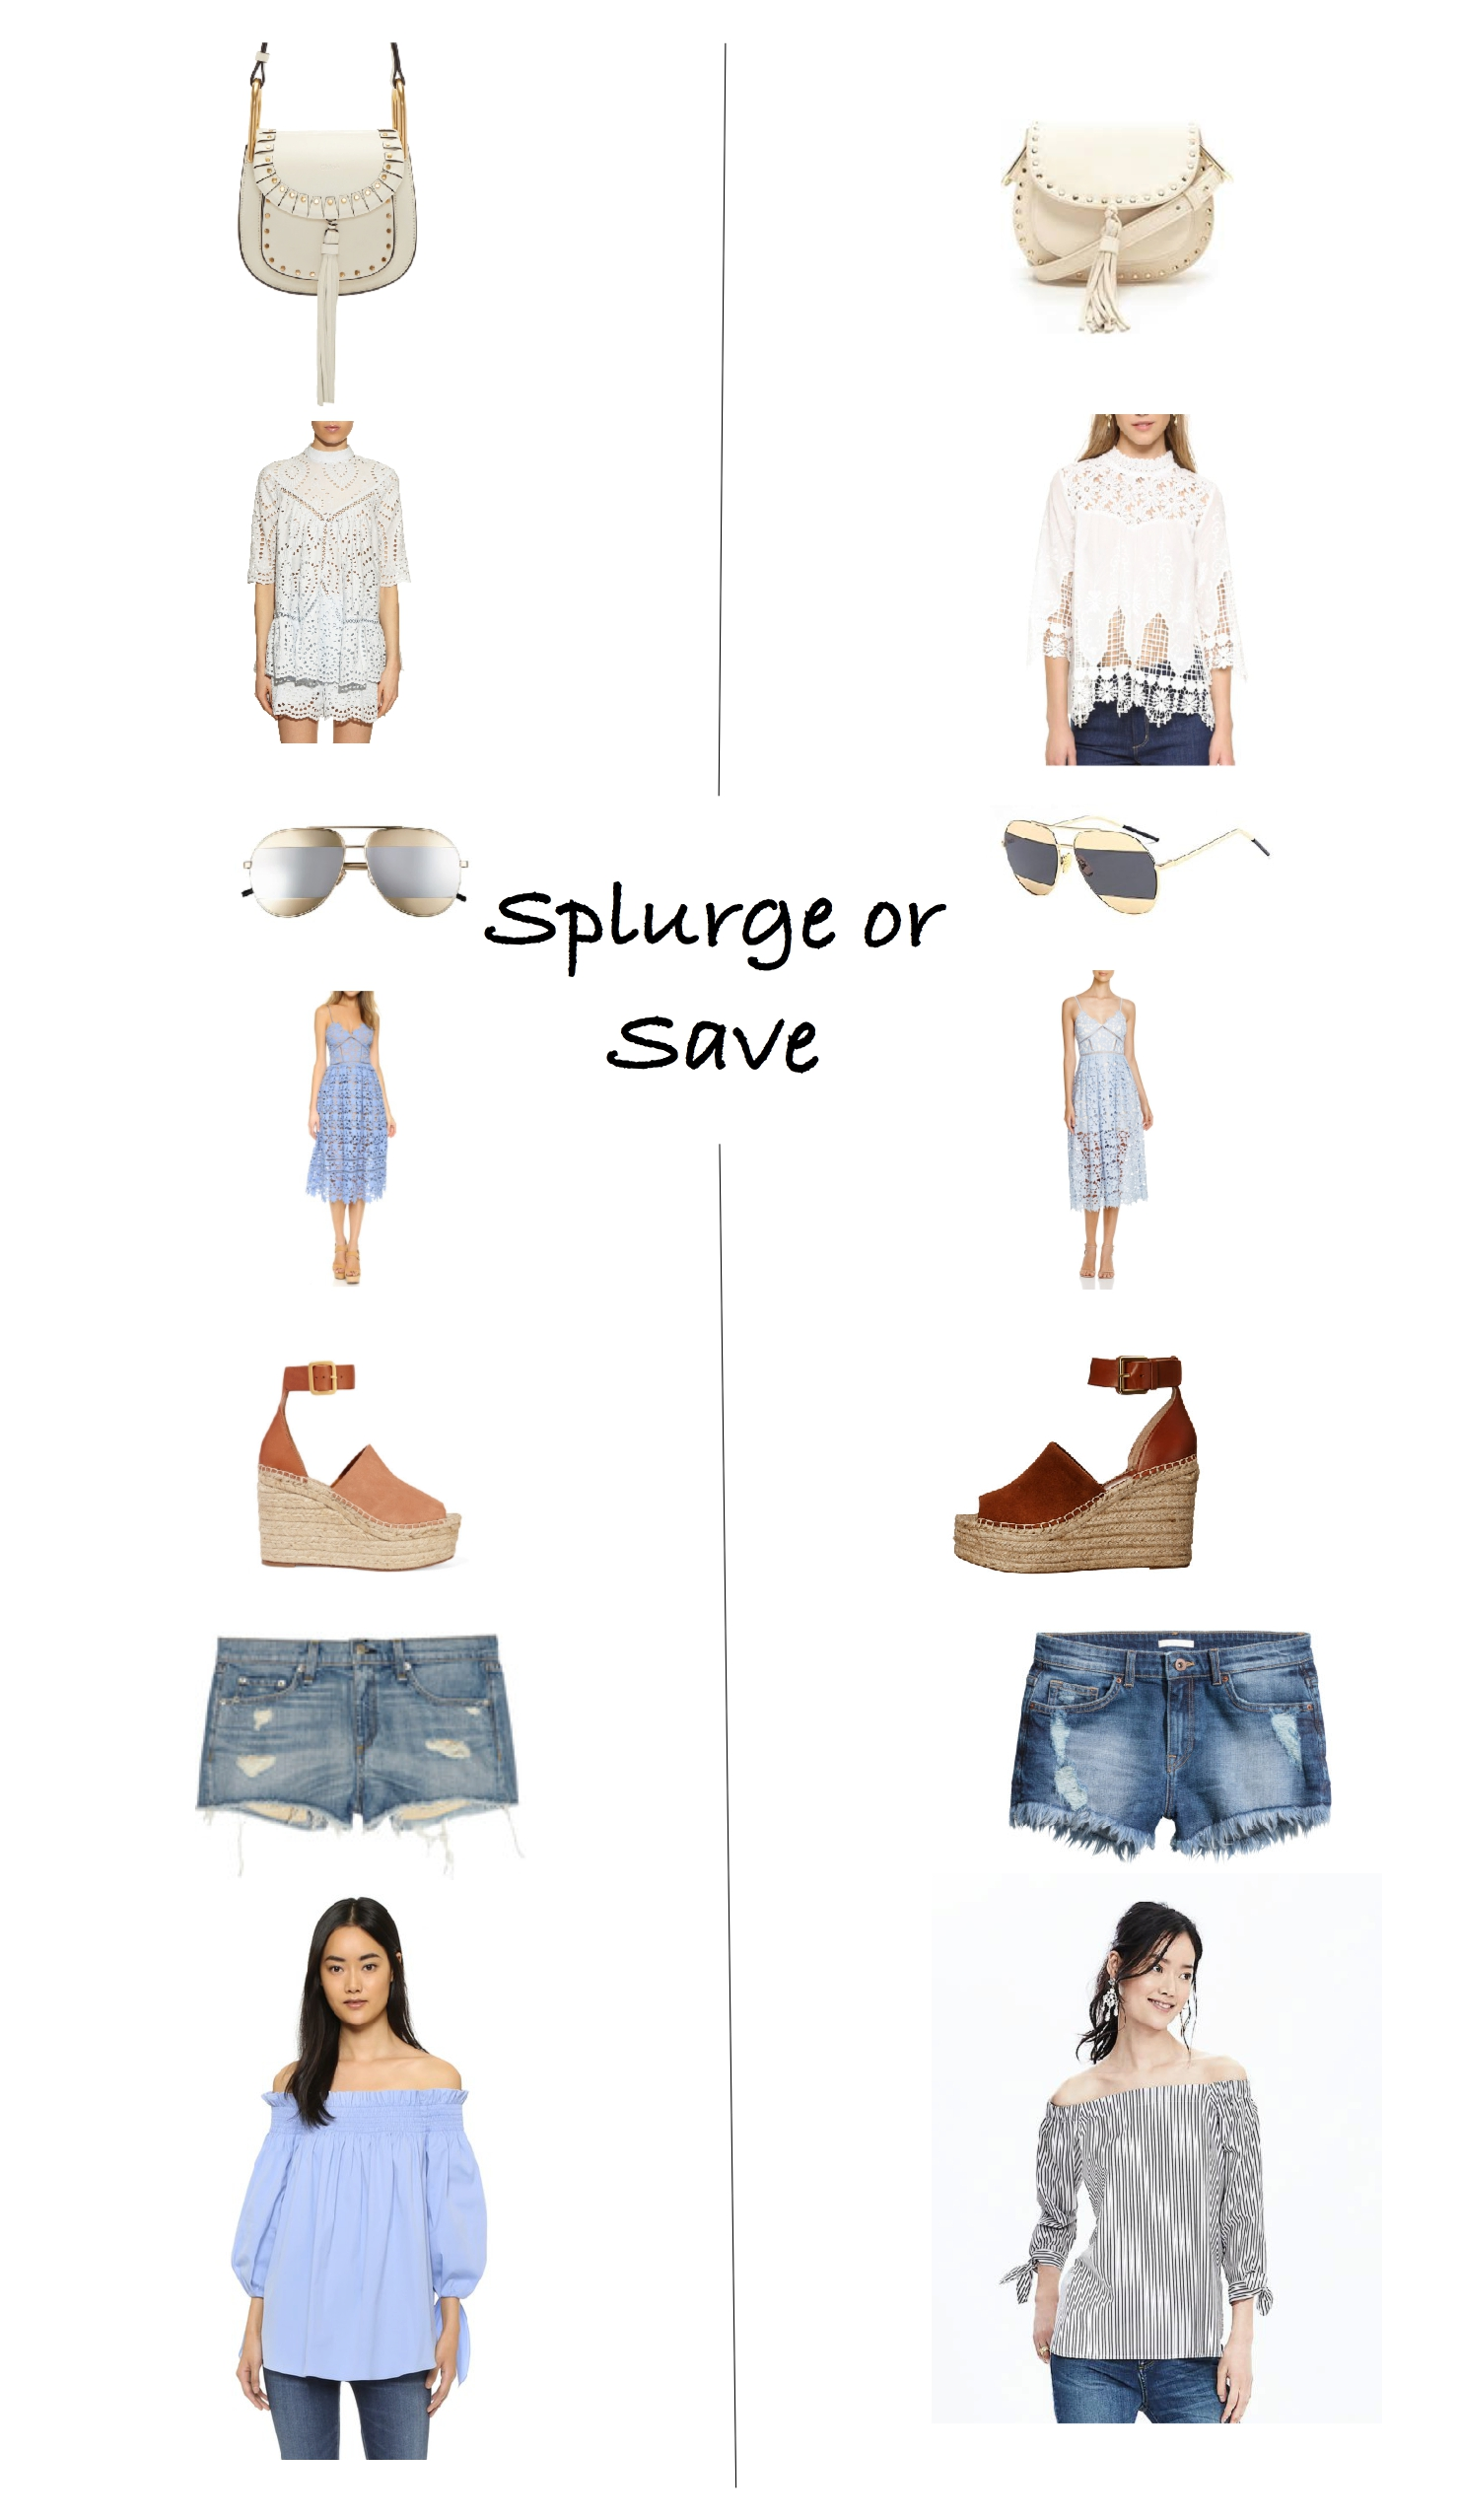 Spring 2016 splurge or save